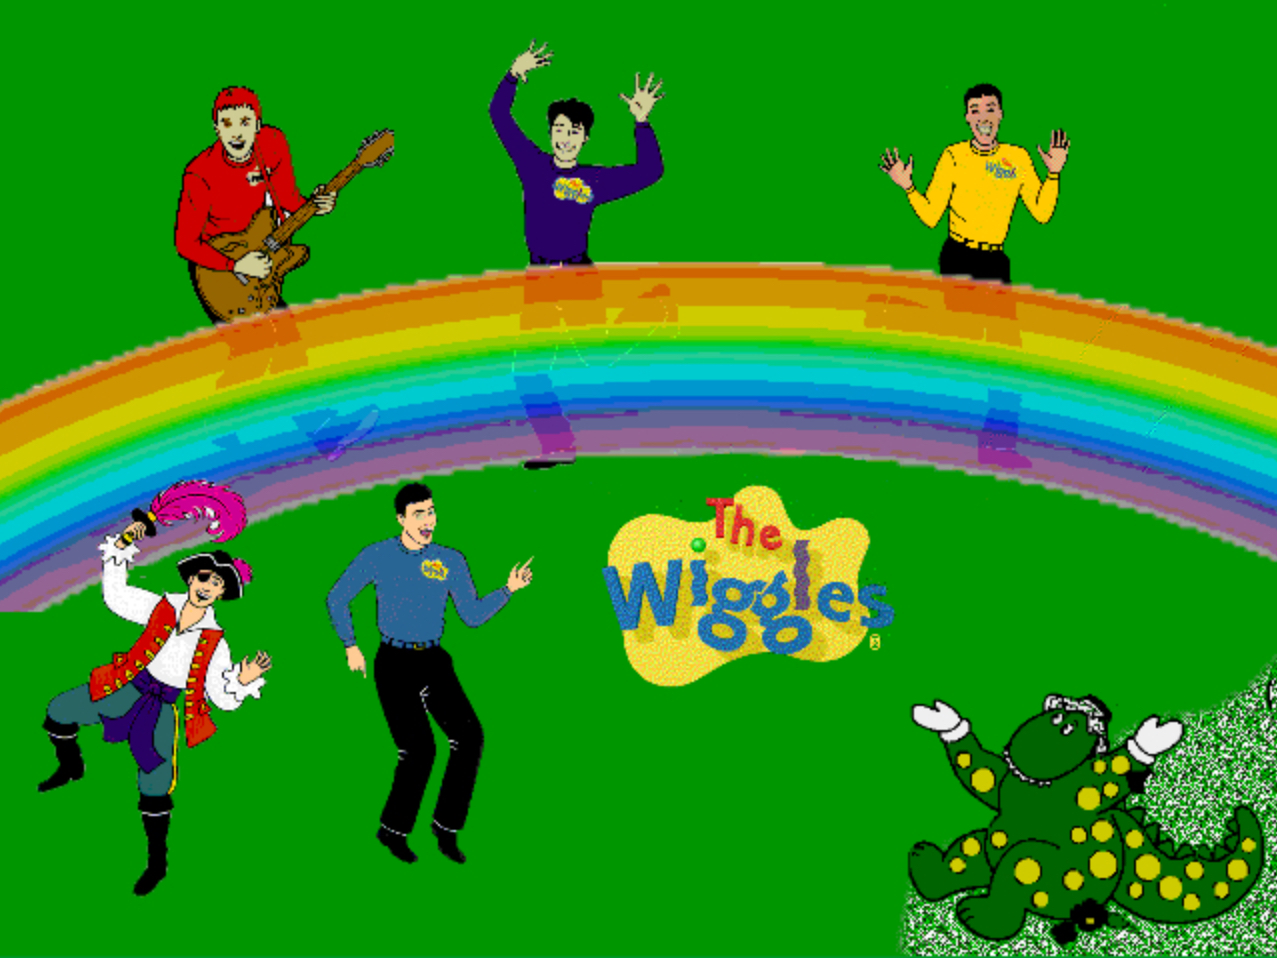 The Wiggles Interviews